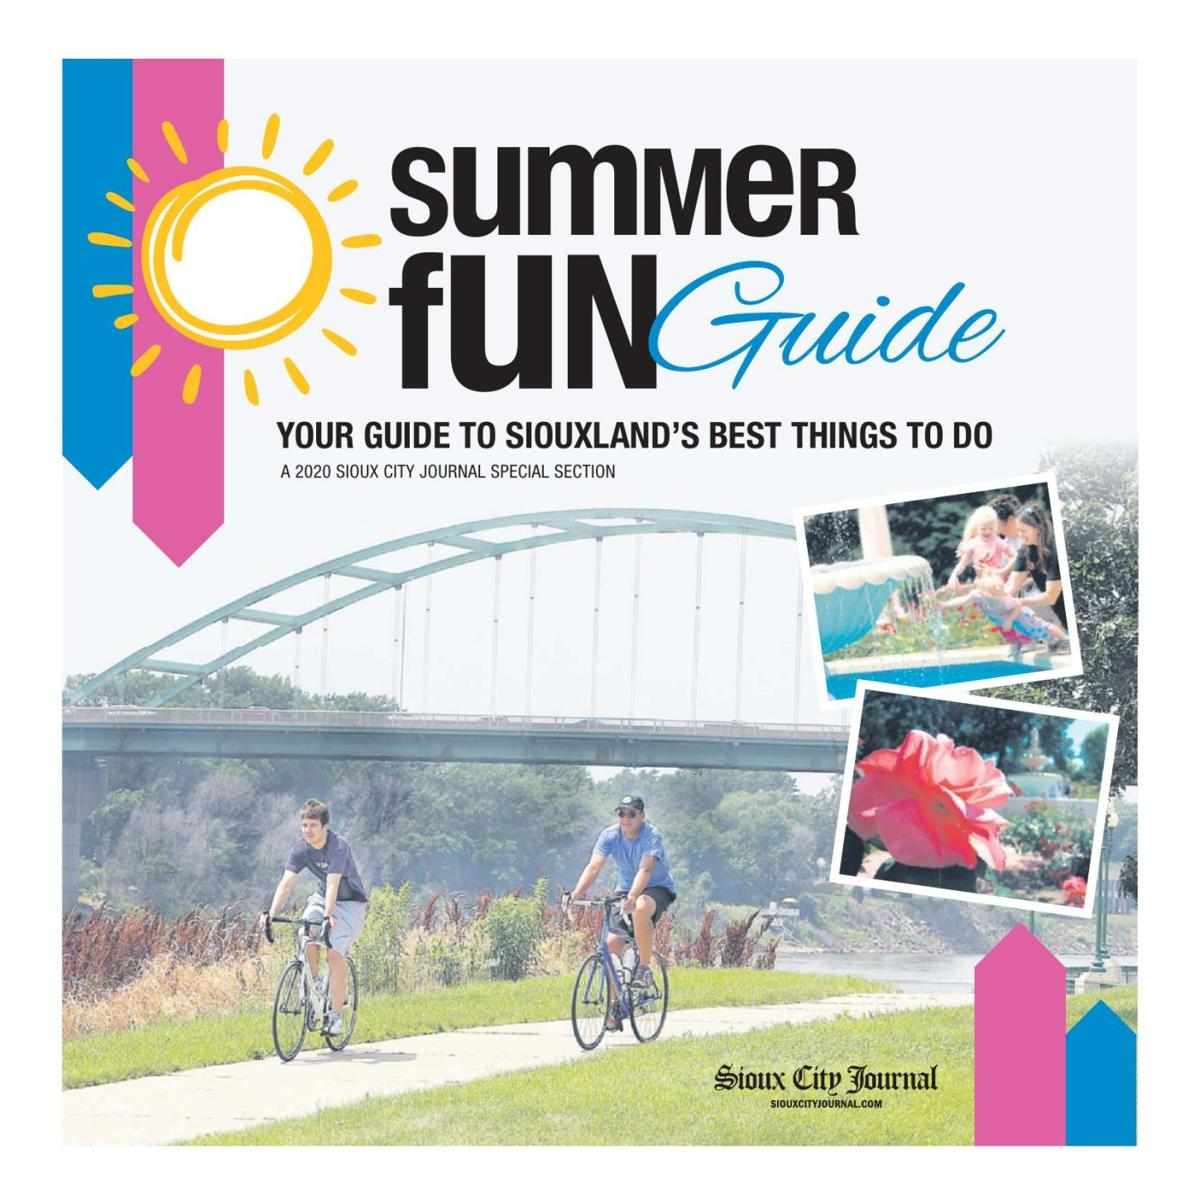 101 Things to Do in Siouxland 2020